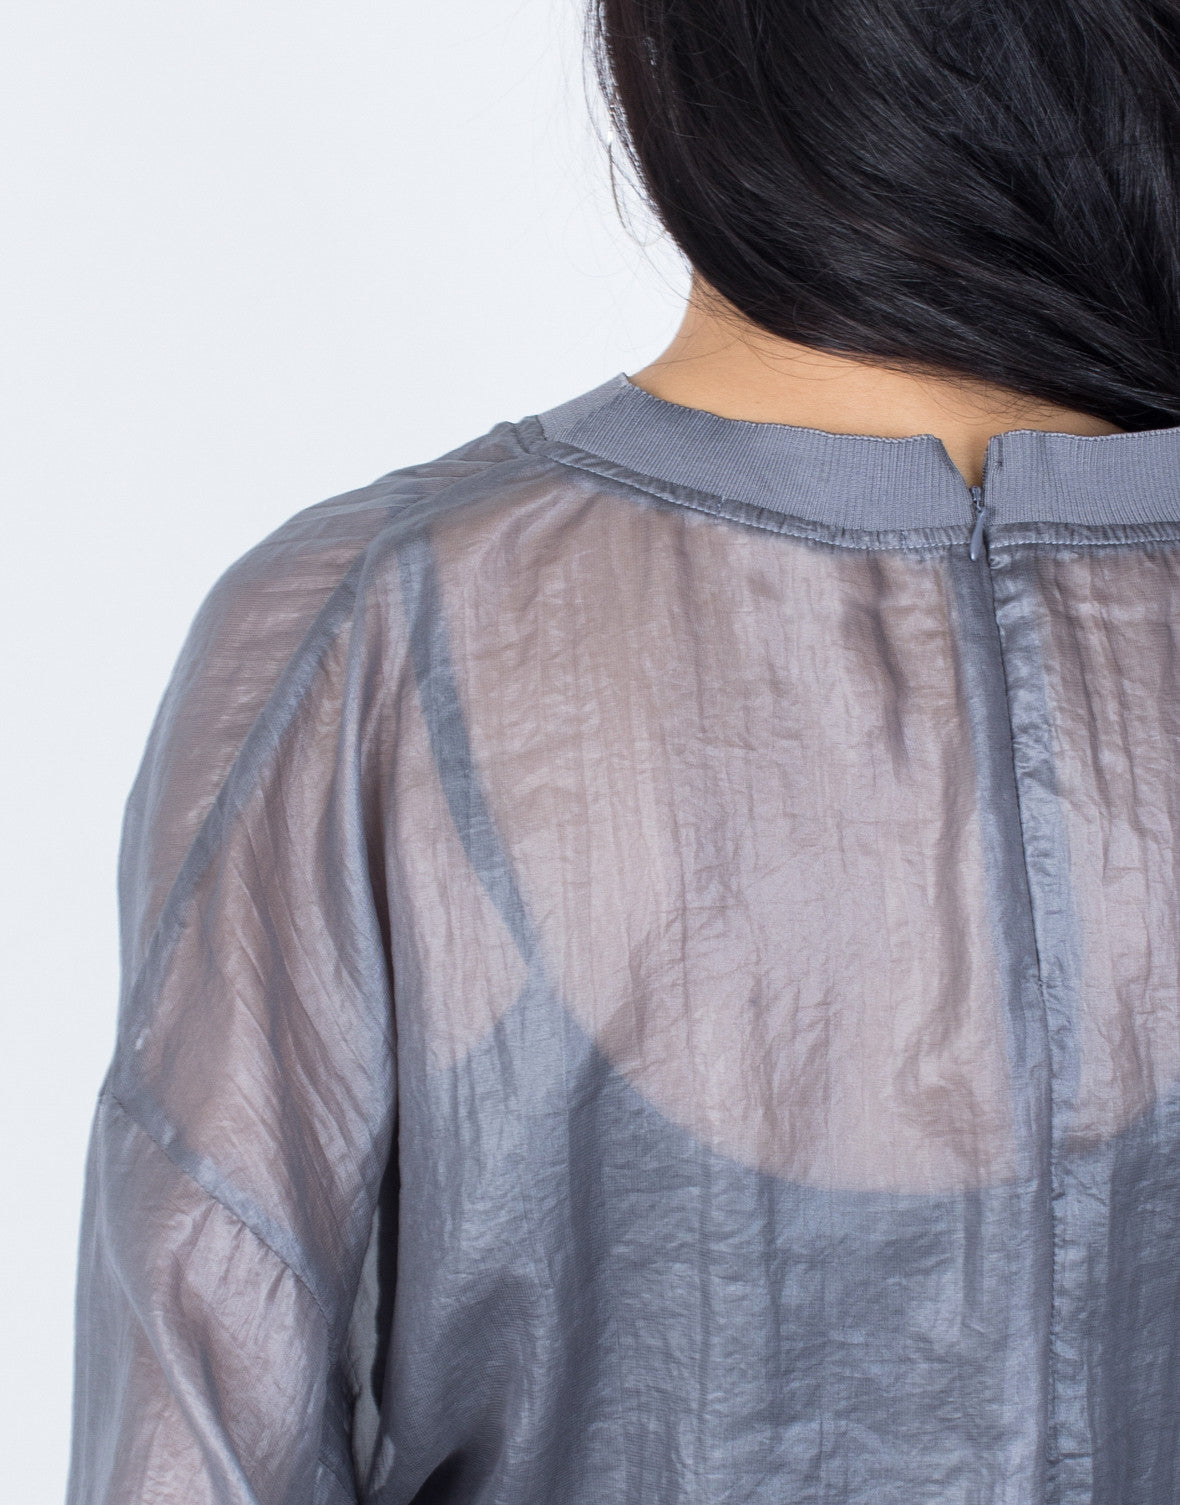 Detail of See Right Through Me Blouse